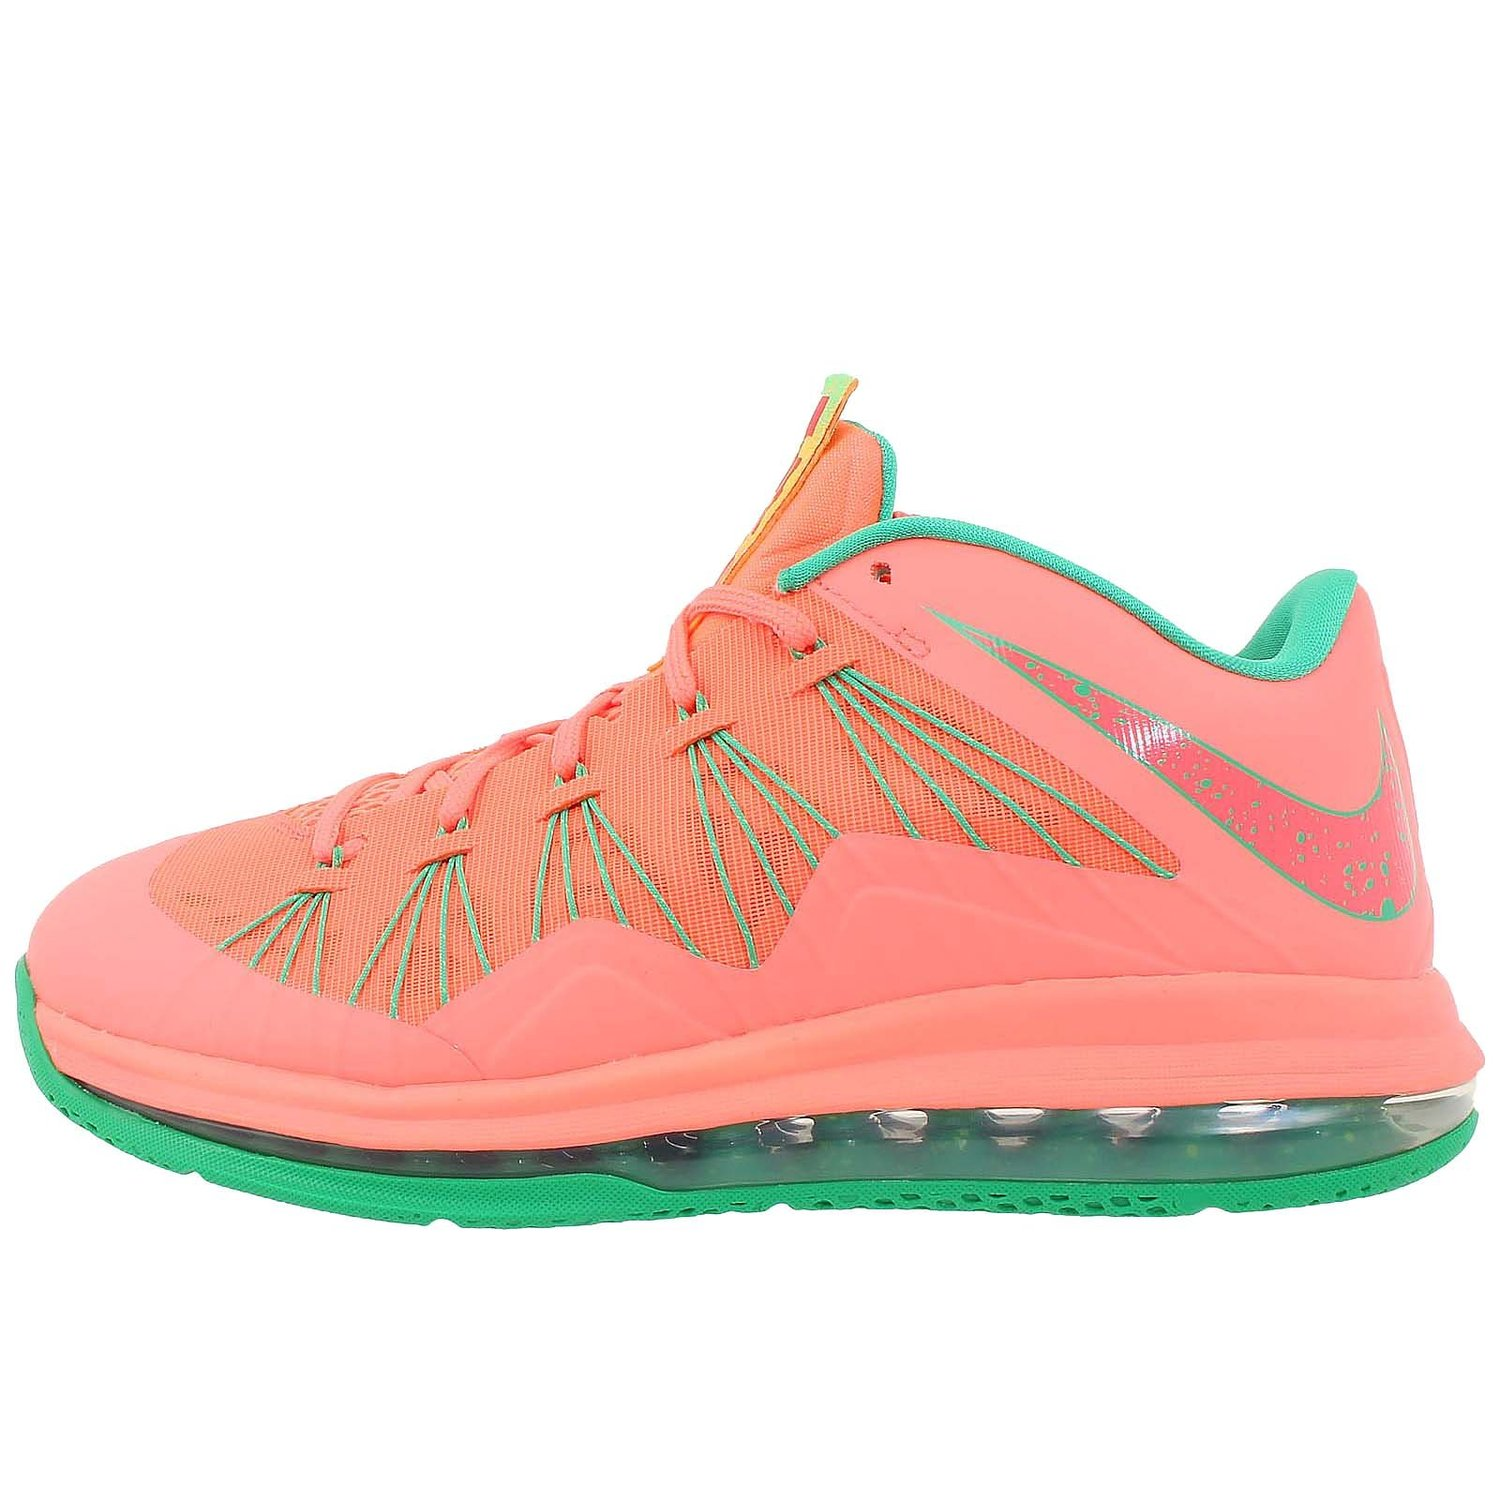 e4ad004164c Get Quotations · nike air max lebron X low mens basketball trainers 579765  801 sneakers shoes watermelon